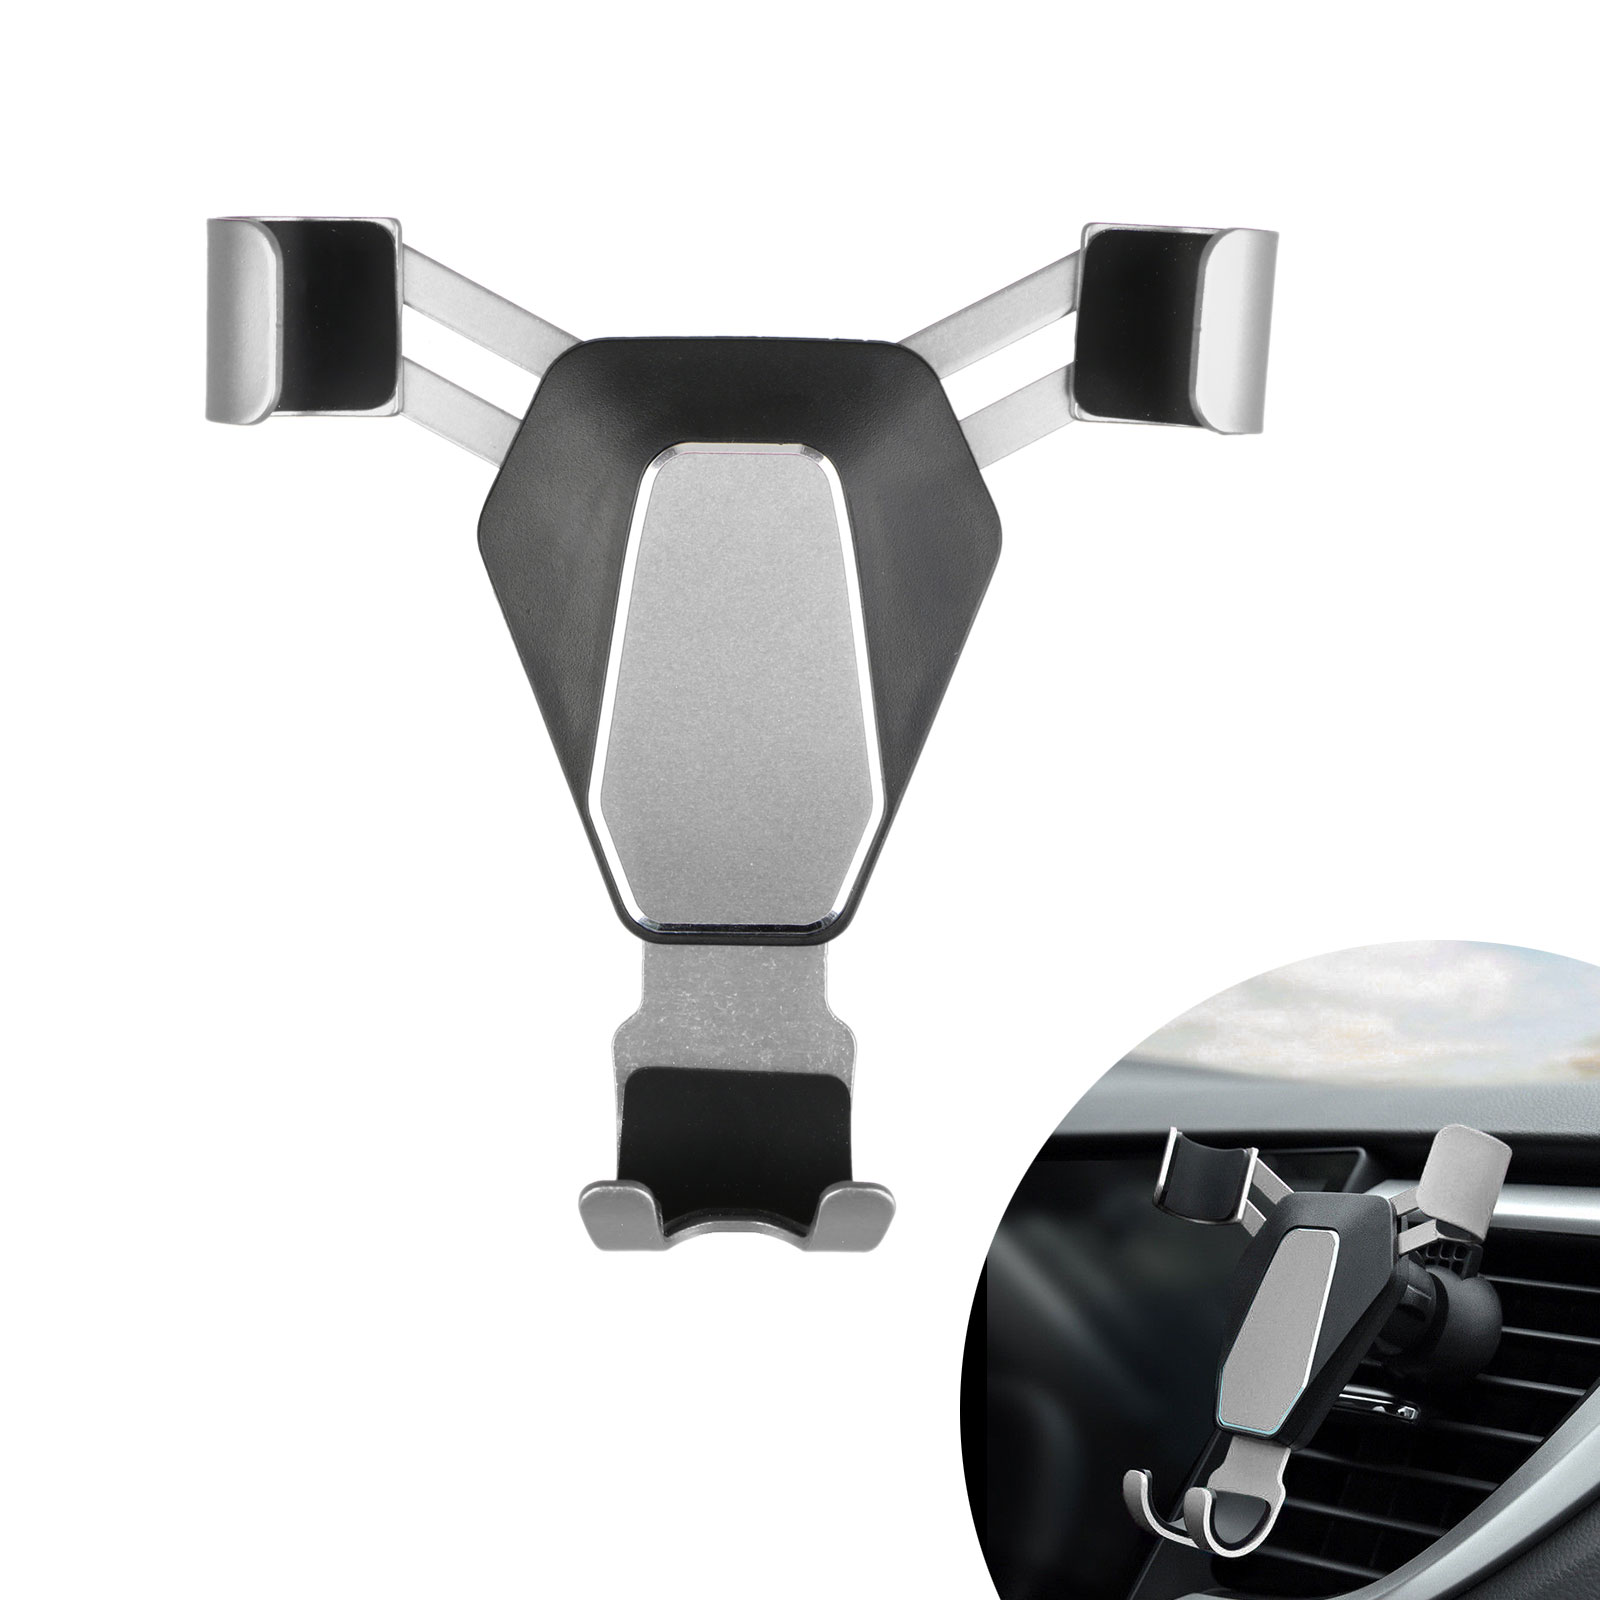 360-Gravity-Car-Phone-Holder-Air-Vent-Mount-Stand-for-iPhone-X-8-Samsung-S9-S8 thumbnail 10